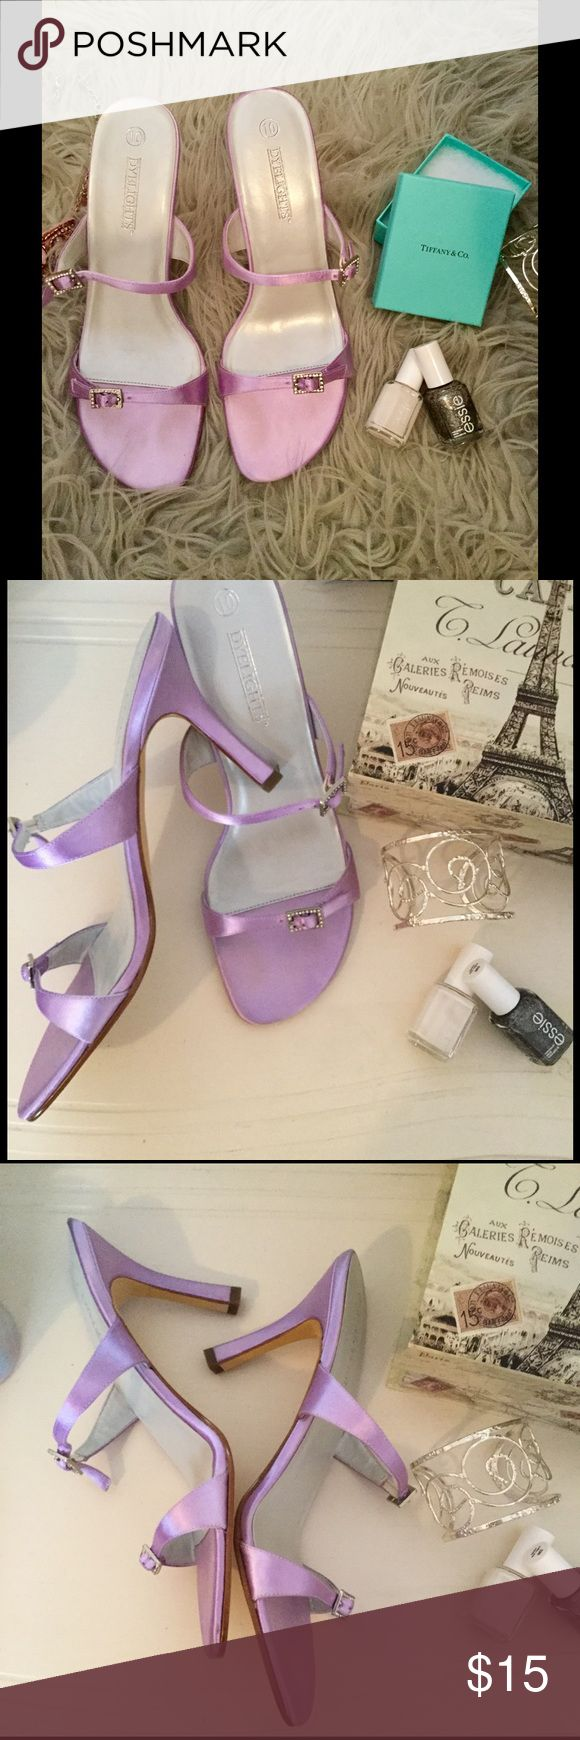 Lavender Dyelights Heels Beautiful shade and perfect pop of color for your closet. In amazing condition!                                                                                                                                                                                                                                 10% of the proceeds of this item go to HOWMS.ORG, a charity devoted to building homes for orphans, widows, and the elderly in Malawi, Africa.(To read more please check…